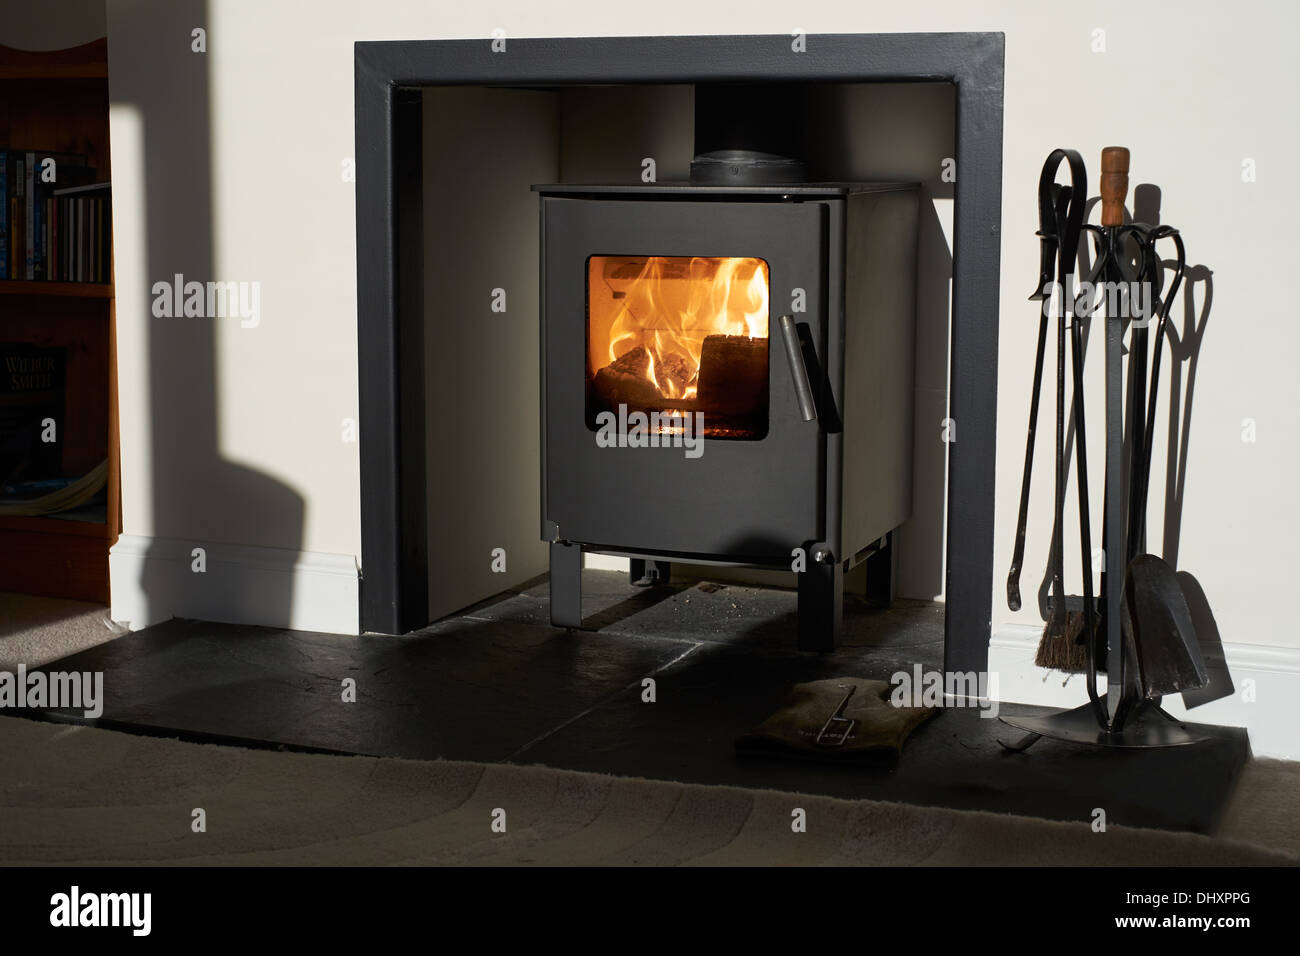 Wood burning stove, traditional heating system. Zero carbon footprint - Stock Image